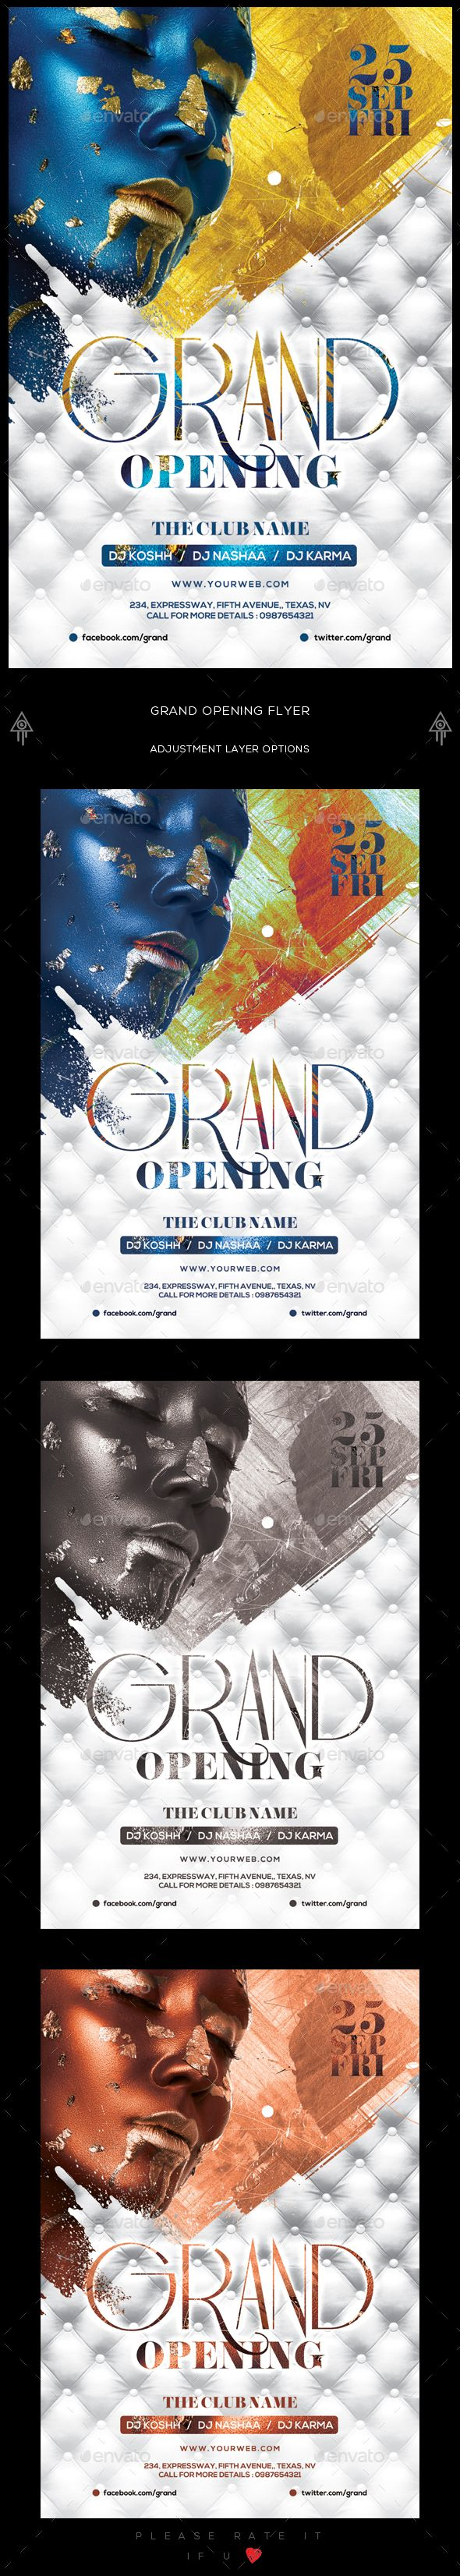 Grand Opening Flyer  Grand Opening Font Logo And Logos